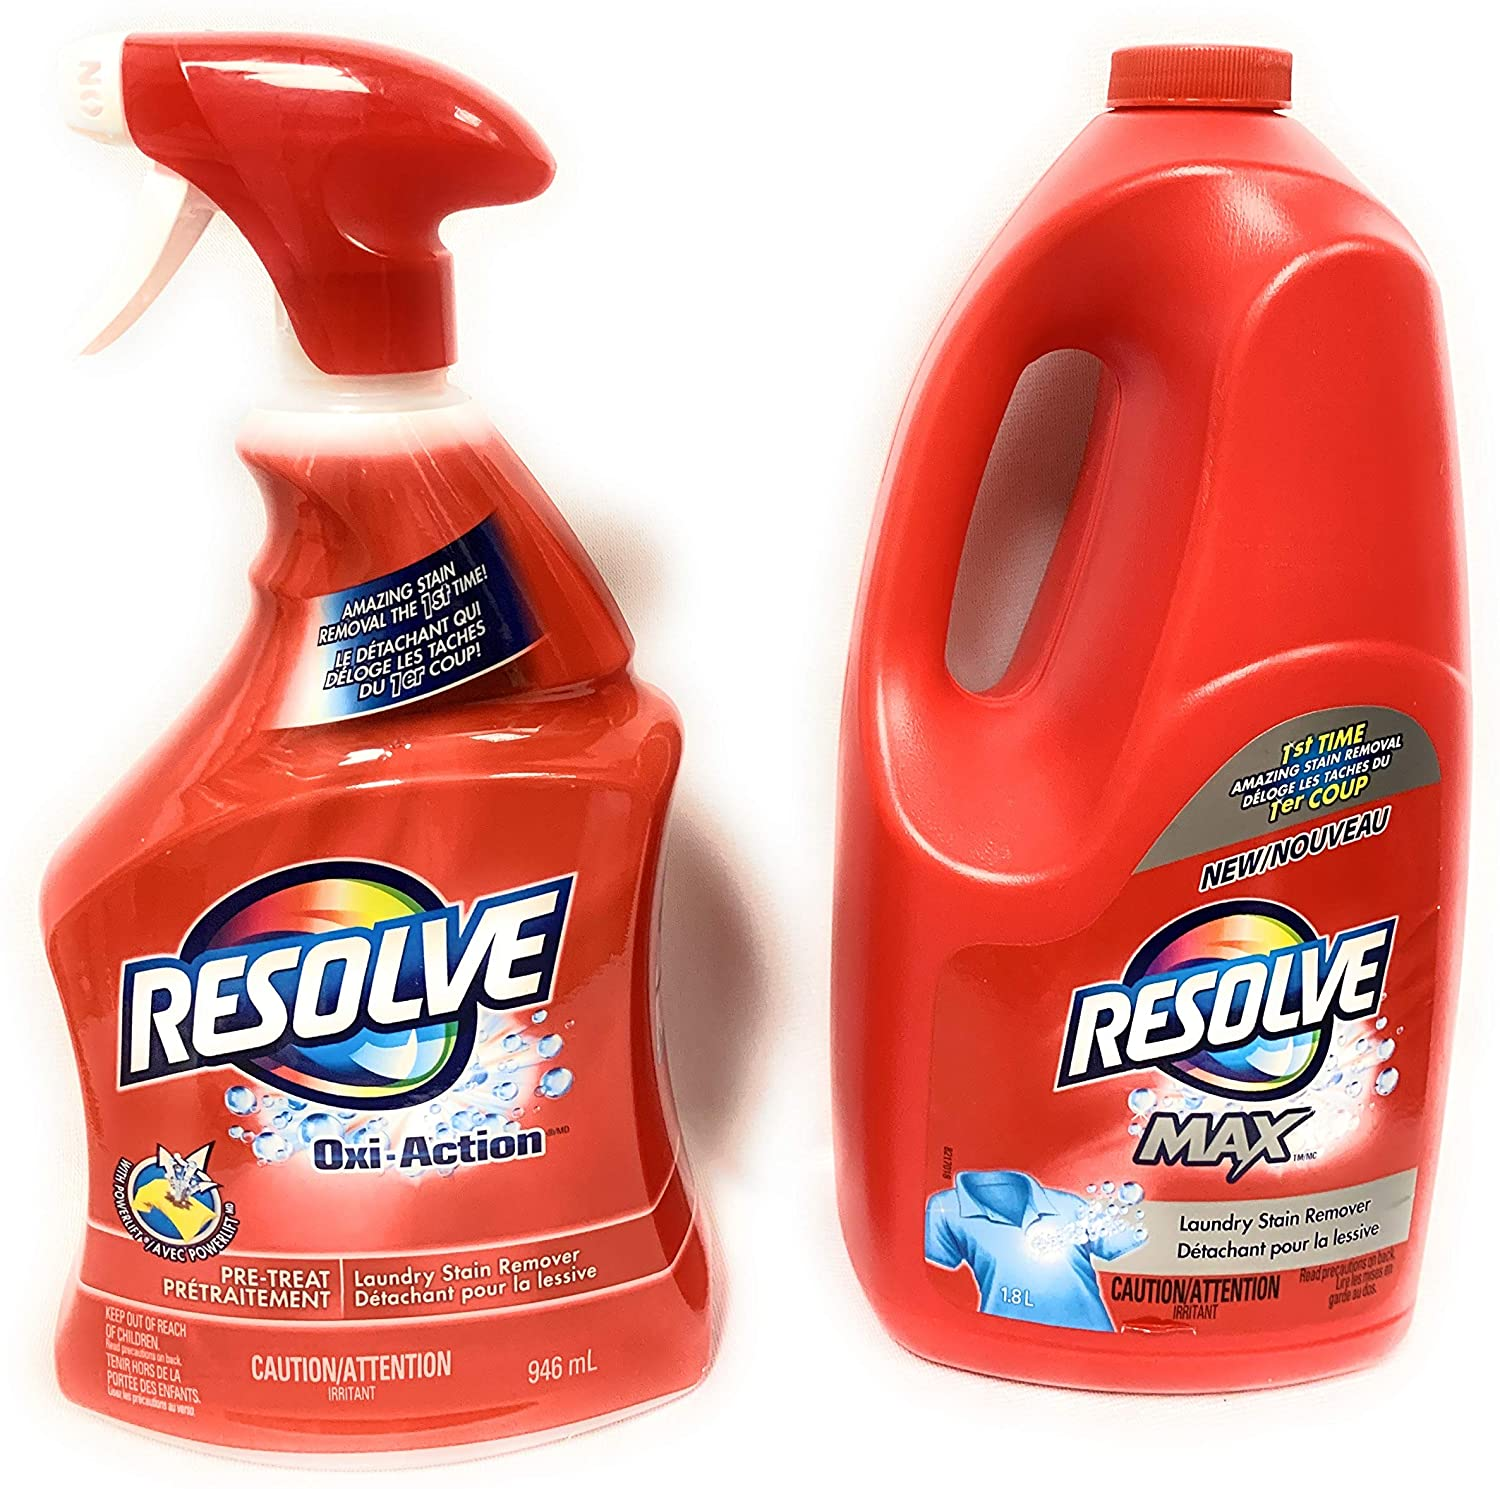 Resolve Oxi-Action (Spray 'N Wash) Trigger & Resolve Max Refill Value Pack, 32 fl.oz Trigger + 61 fl. oz. Refill